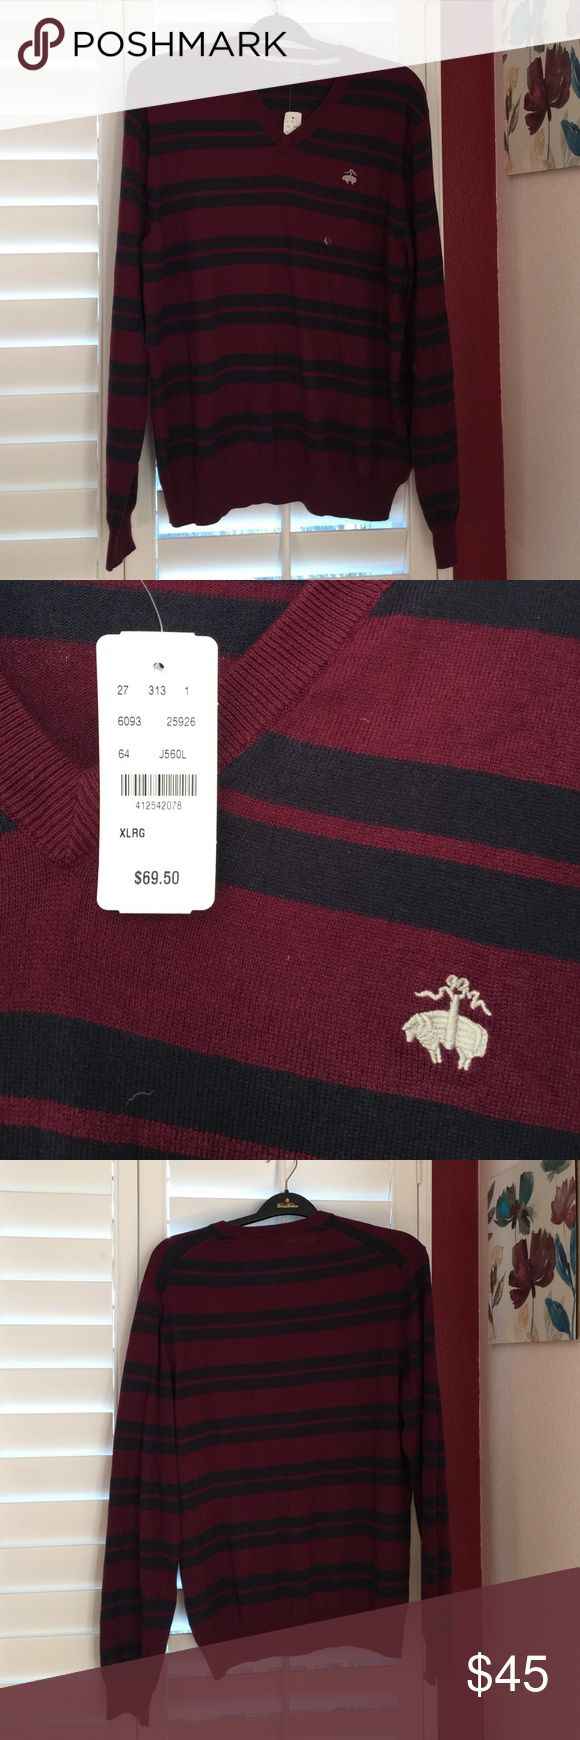 Nwt brooks brothers cotton/cashmere sweater XL Nwt brooks brothers cotton/cashmere sweater XL Brooks Brothers Sweaters V-Neck